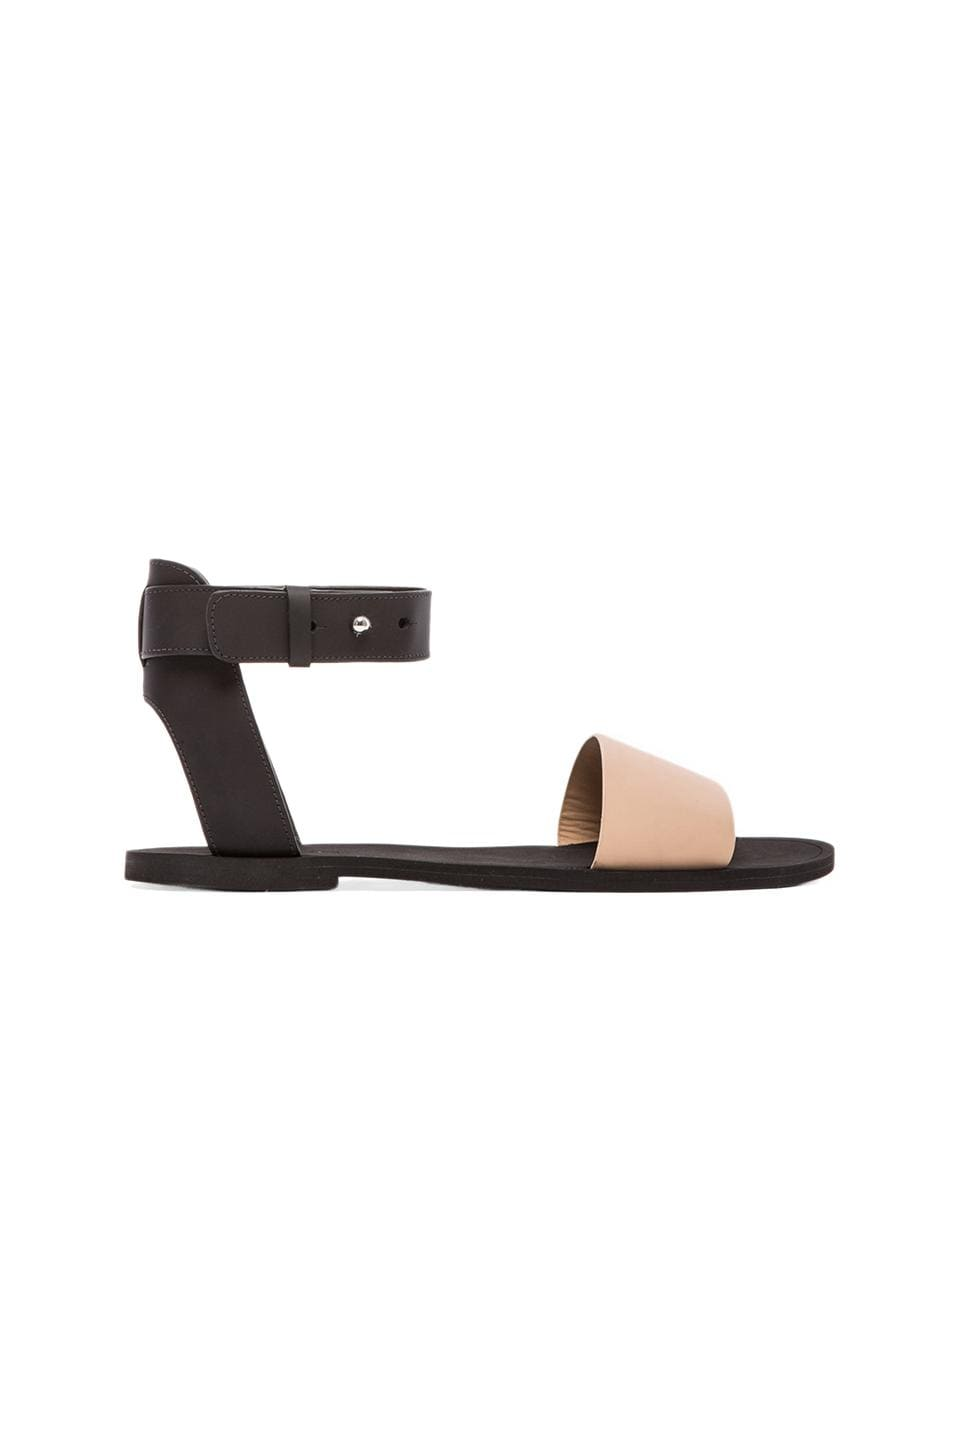 Vince Sawyer Sandal in Cappuccino & Black